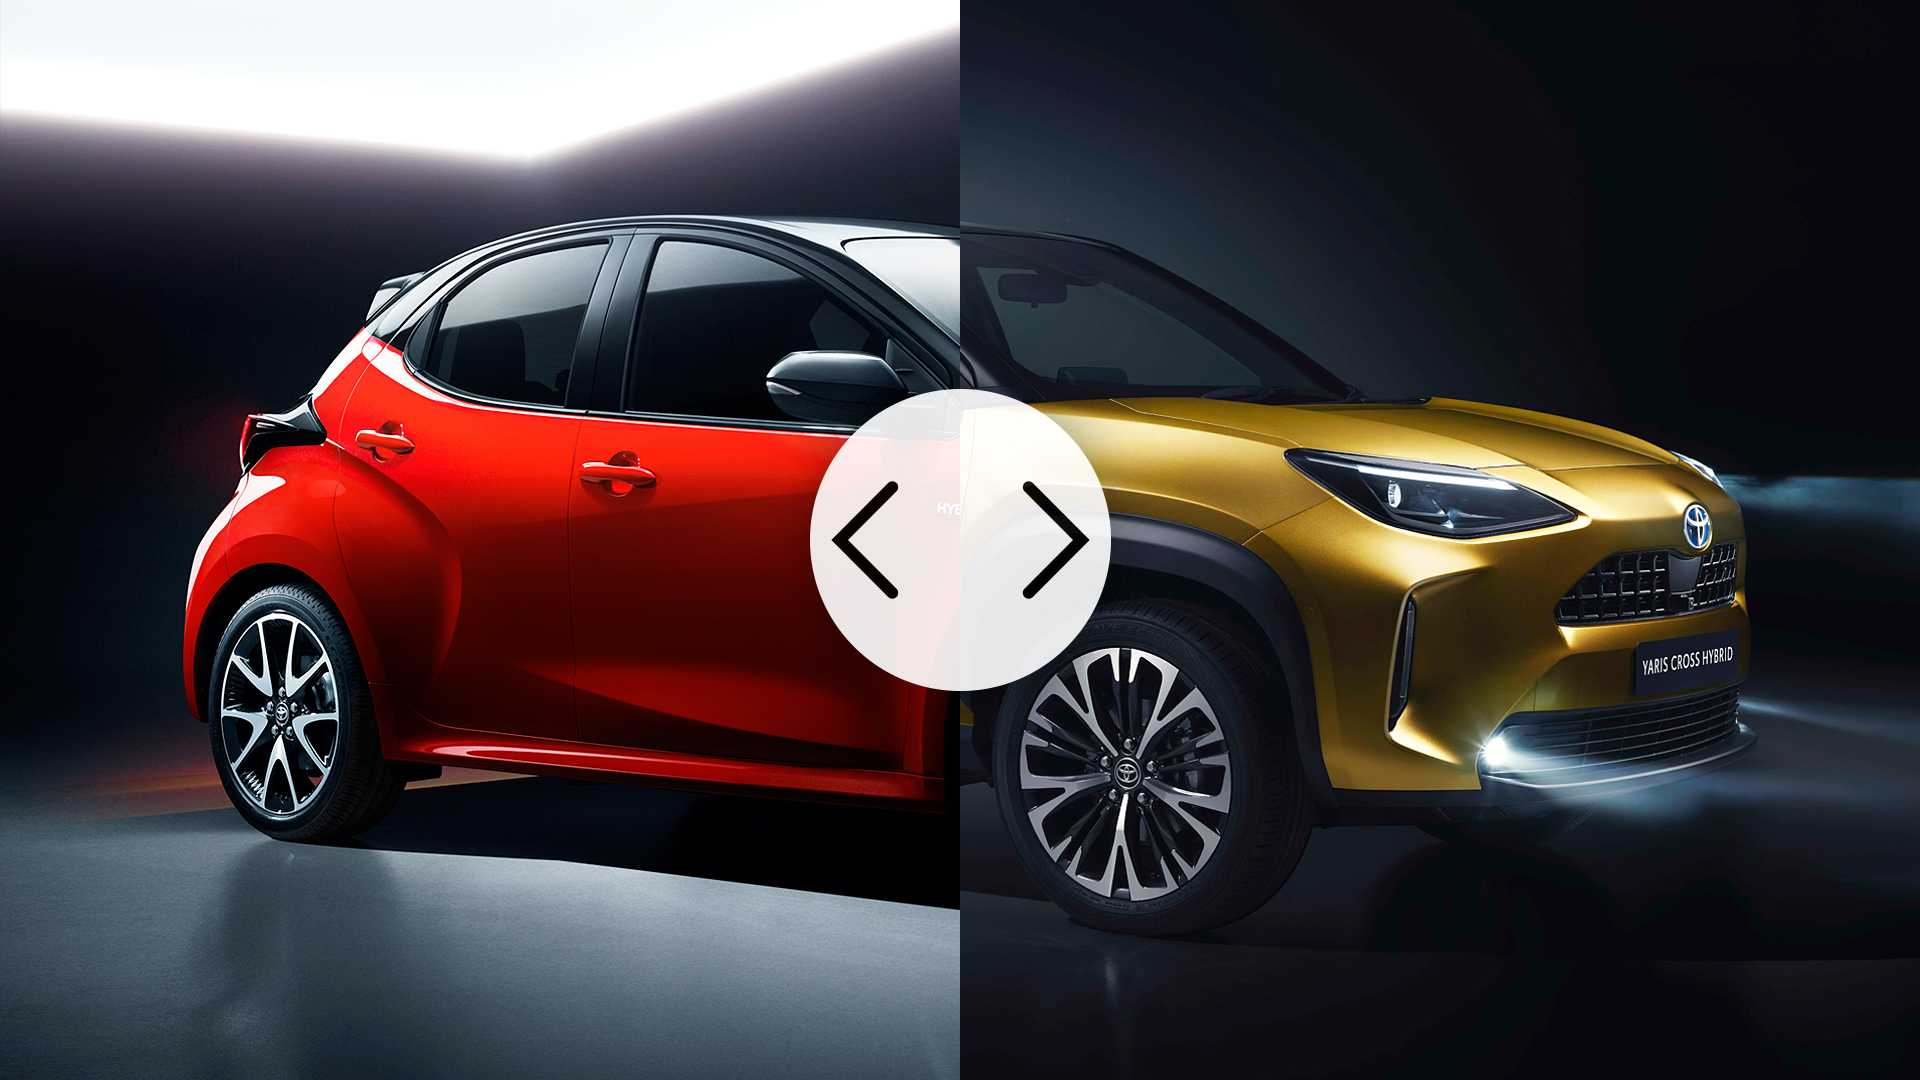 Crossover Vs Suv >> Toyota Yaris Vs Yaris Cross: What Changes Between Car And ...